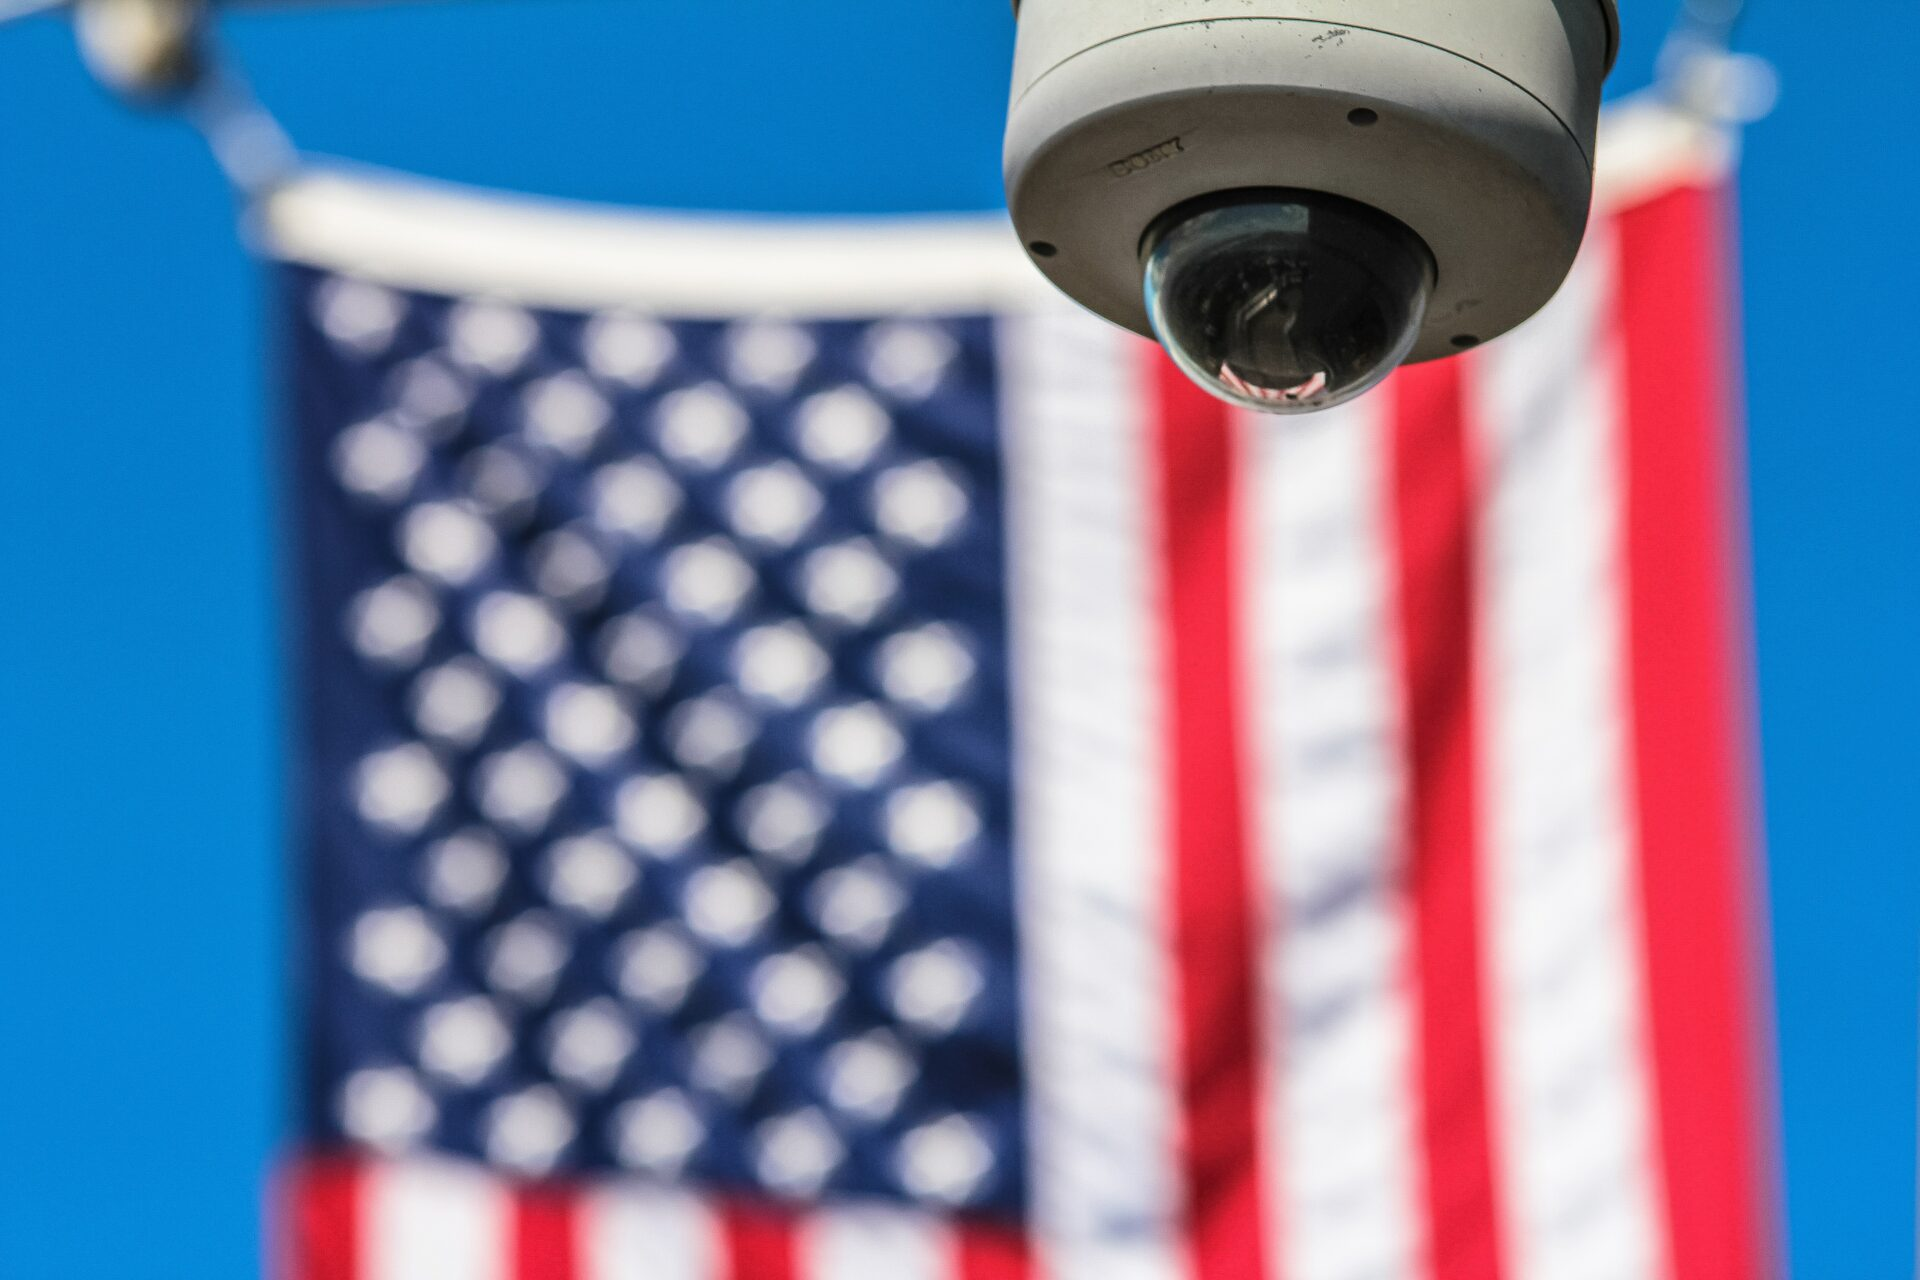 flag-usa-controls-security-camera-97509